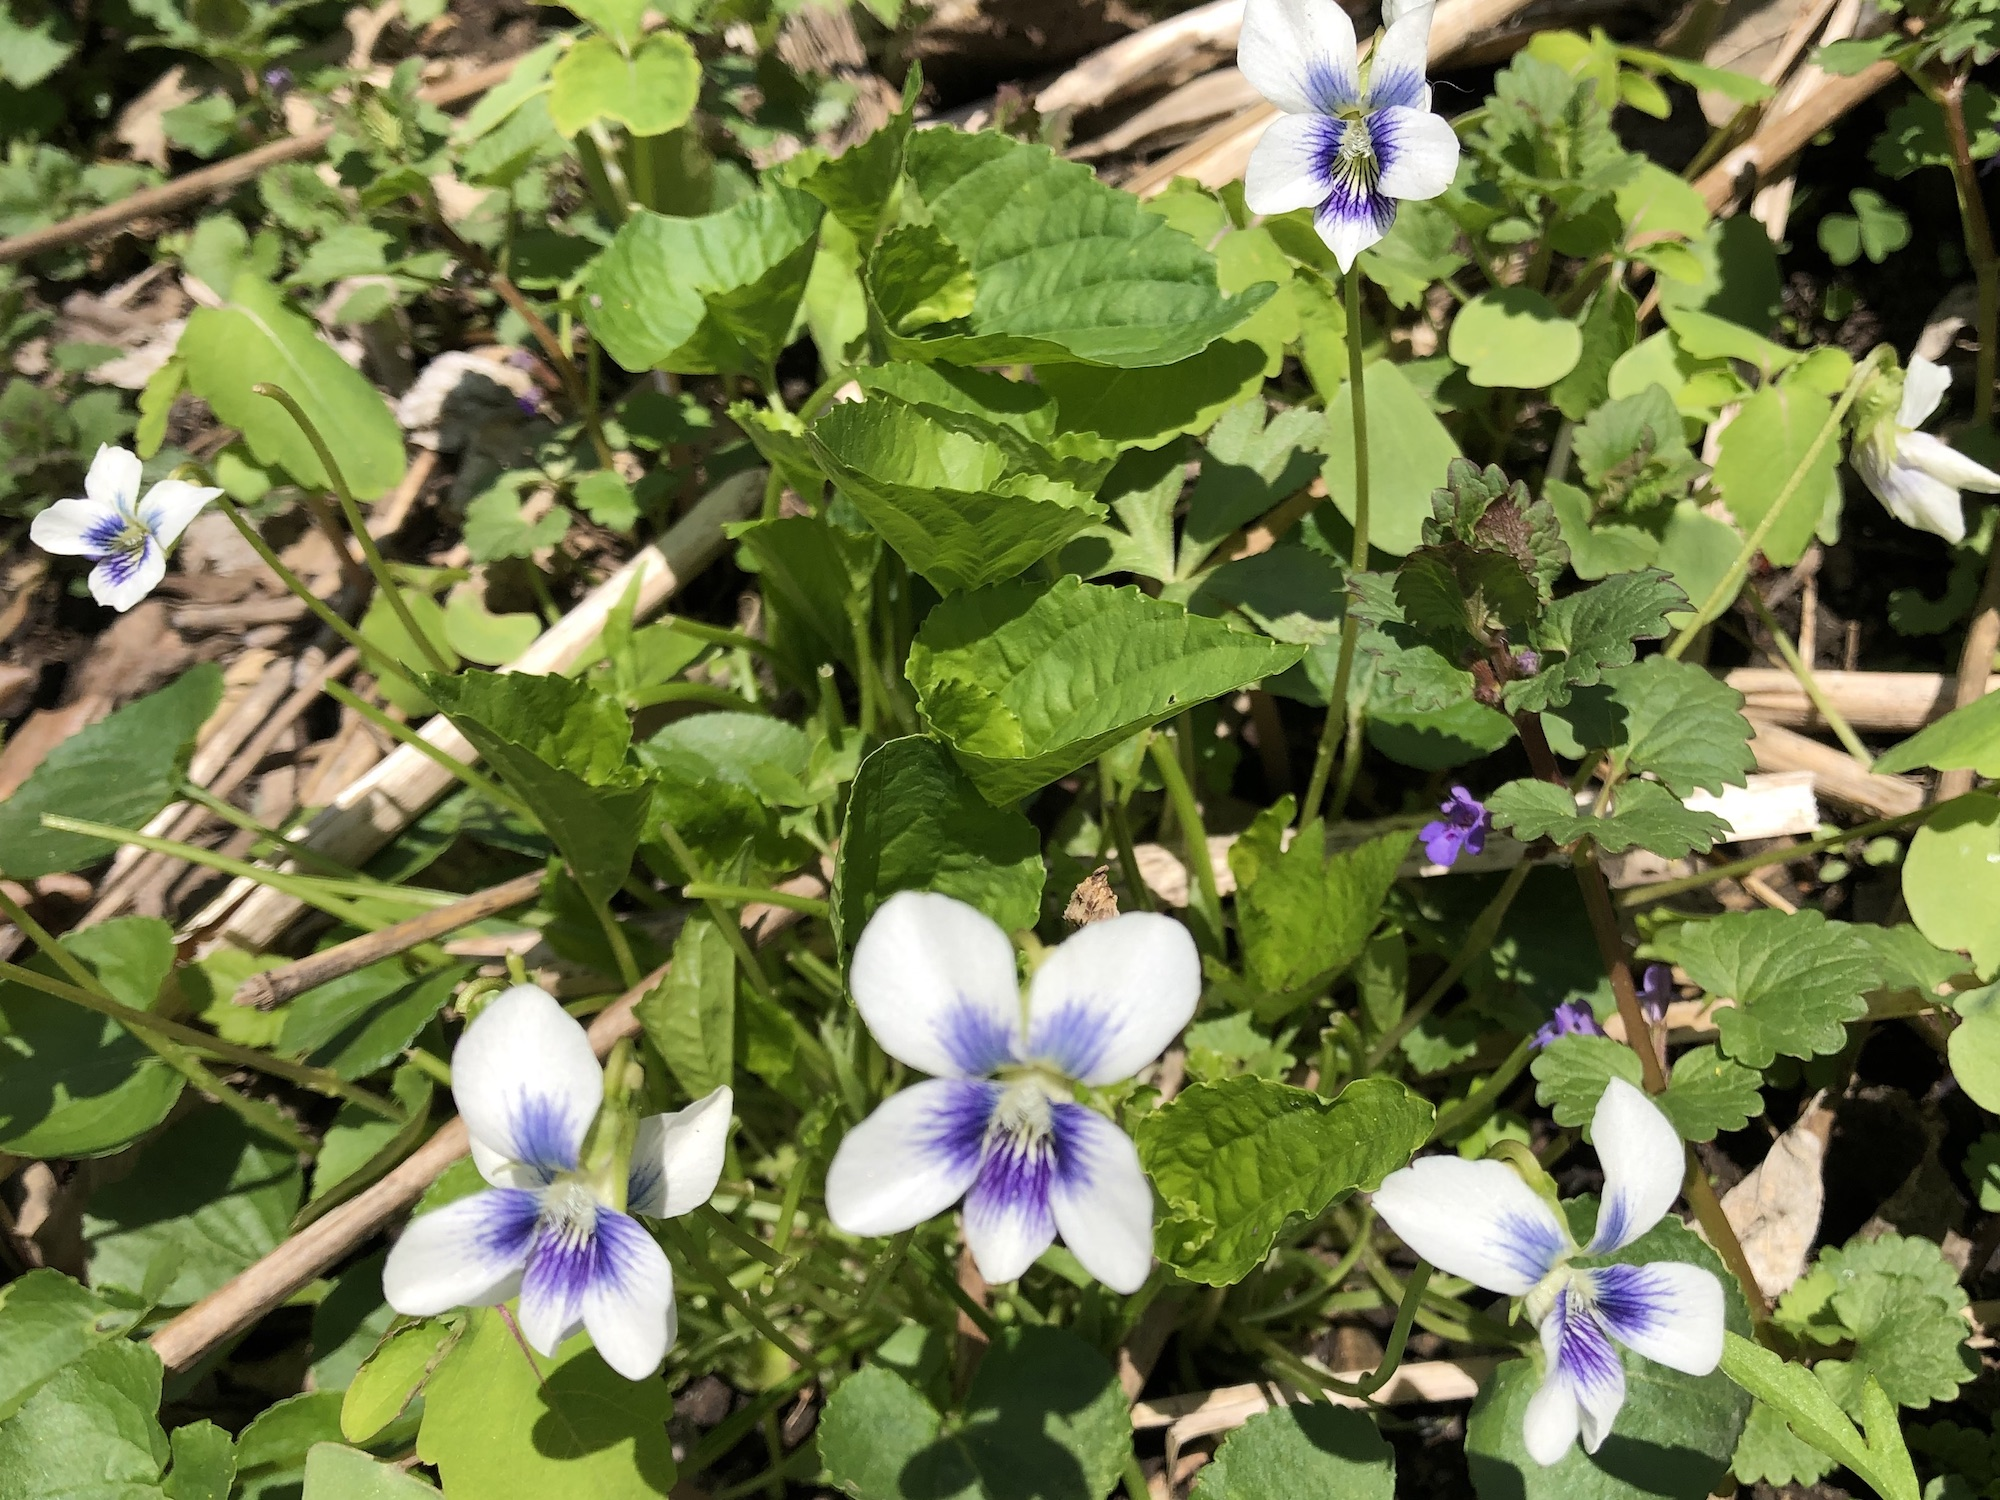 Wood Violets near the Duck Pond on May 5, 2019.